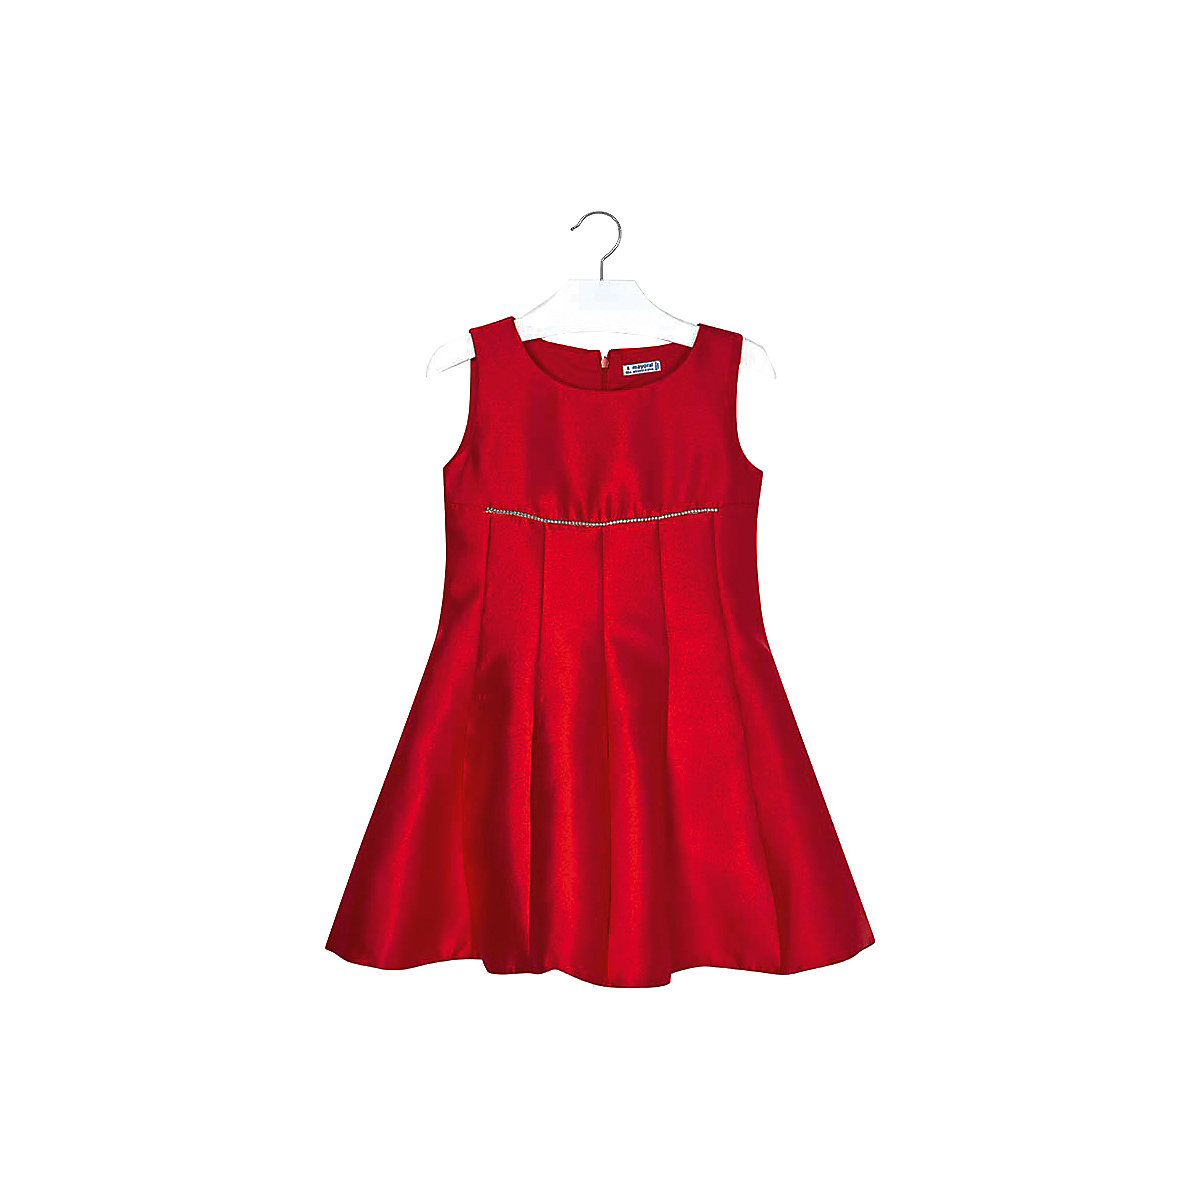 MAYORAL Dresses 10678828 Girl Children Party fitted pleated skirt Red Polyester Preppy Style Solid Knee-Length Sleeveless Sleeve navy velvet mini pleated skirt